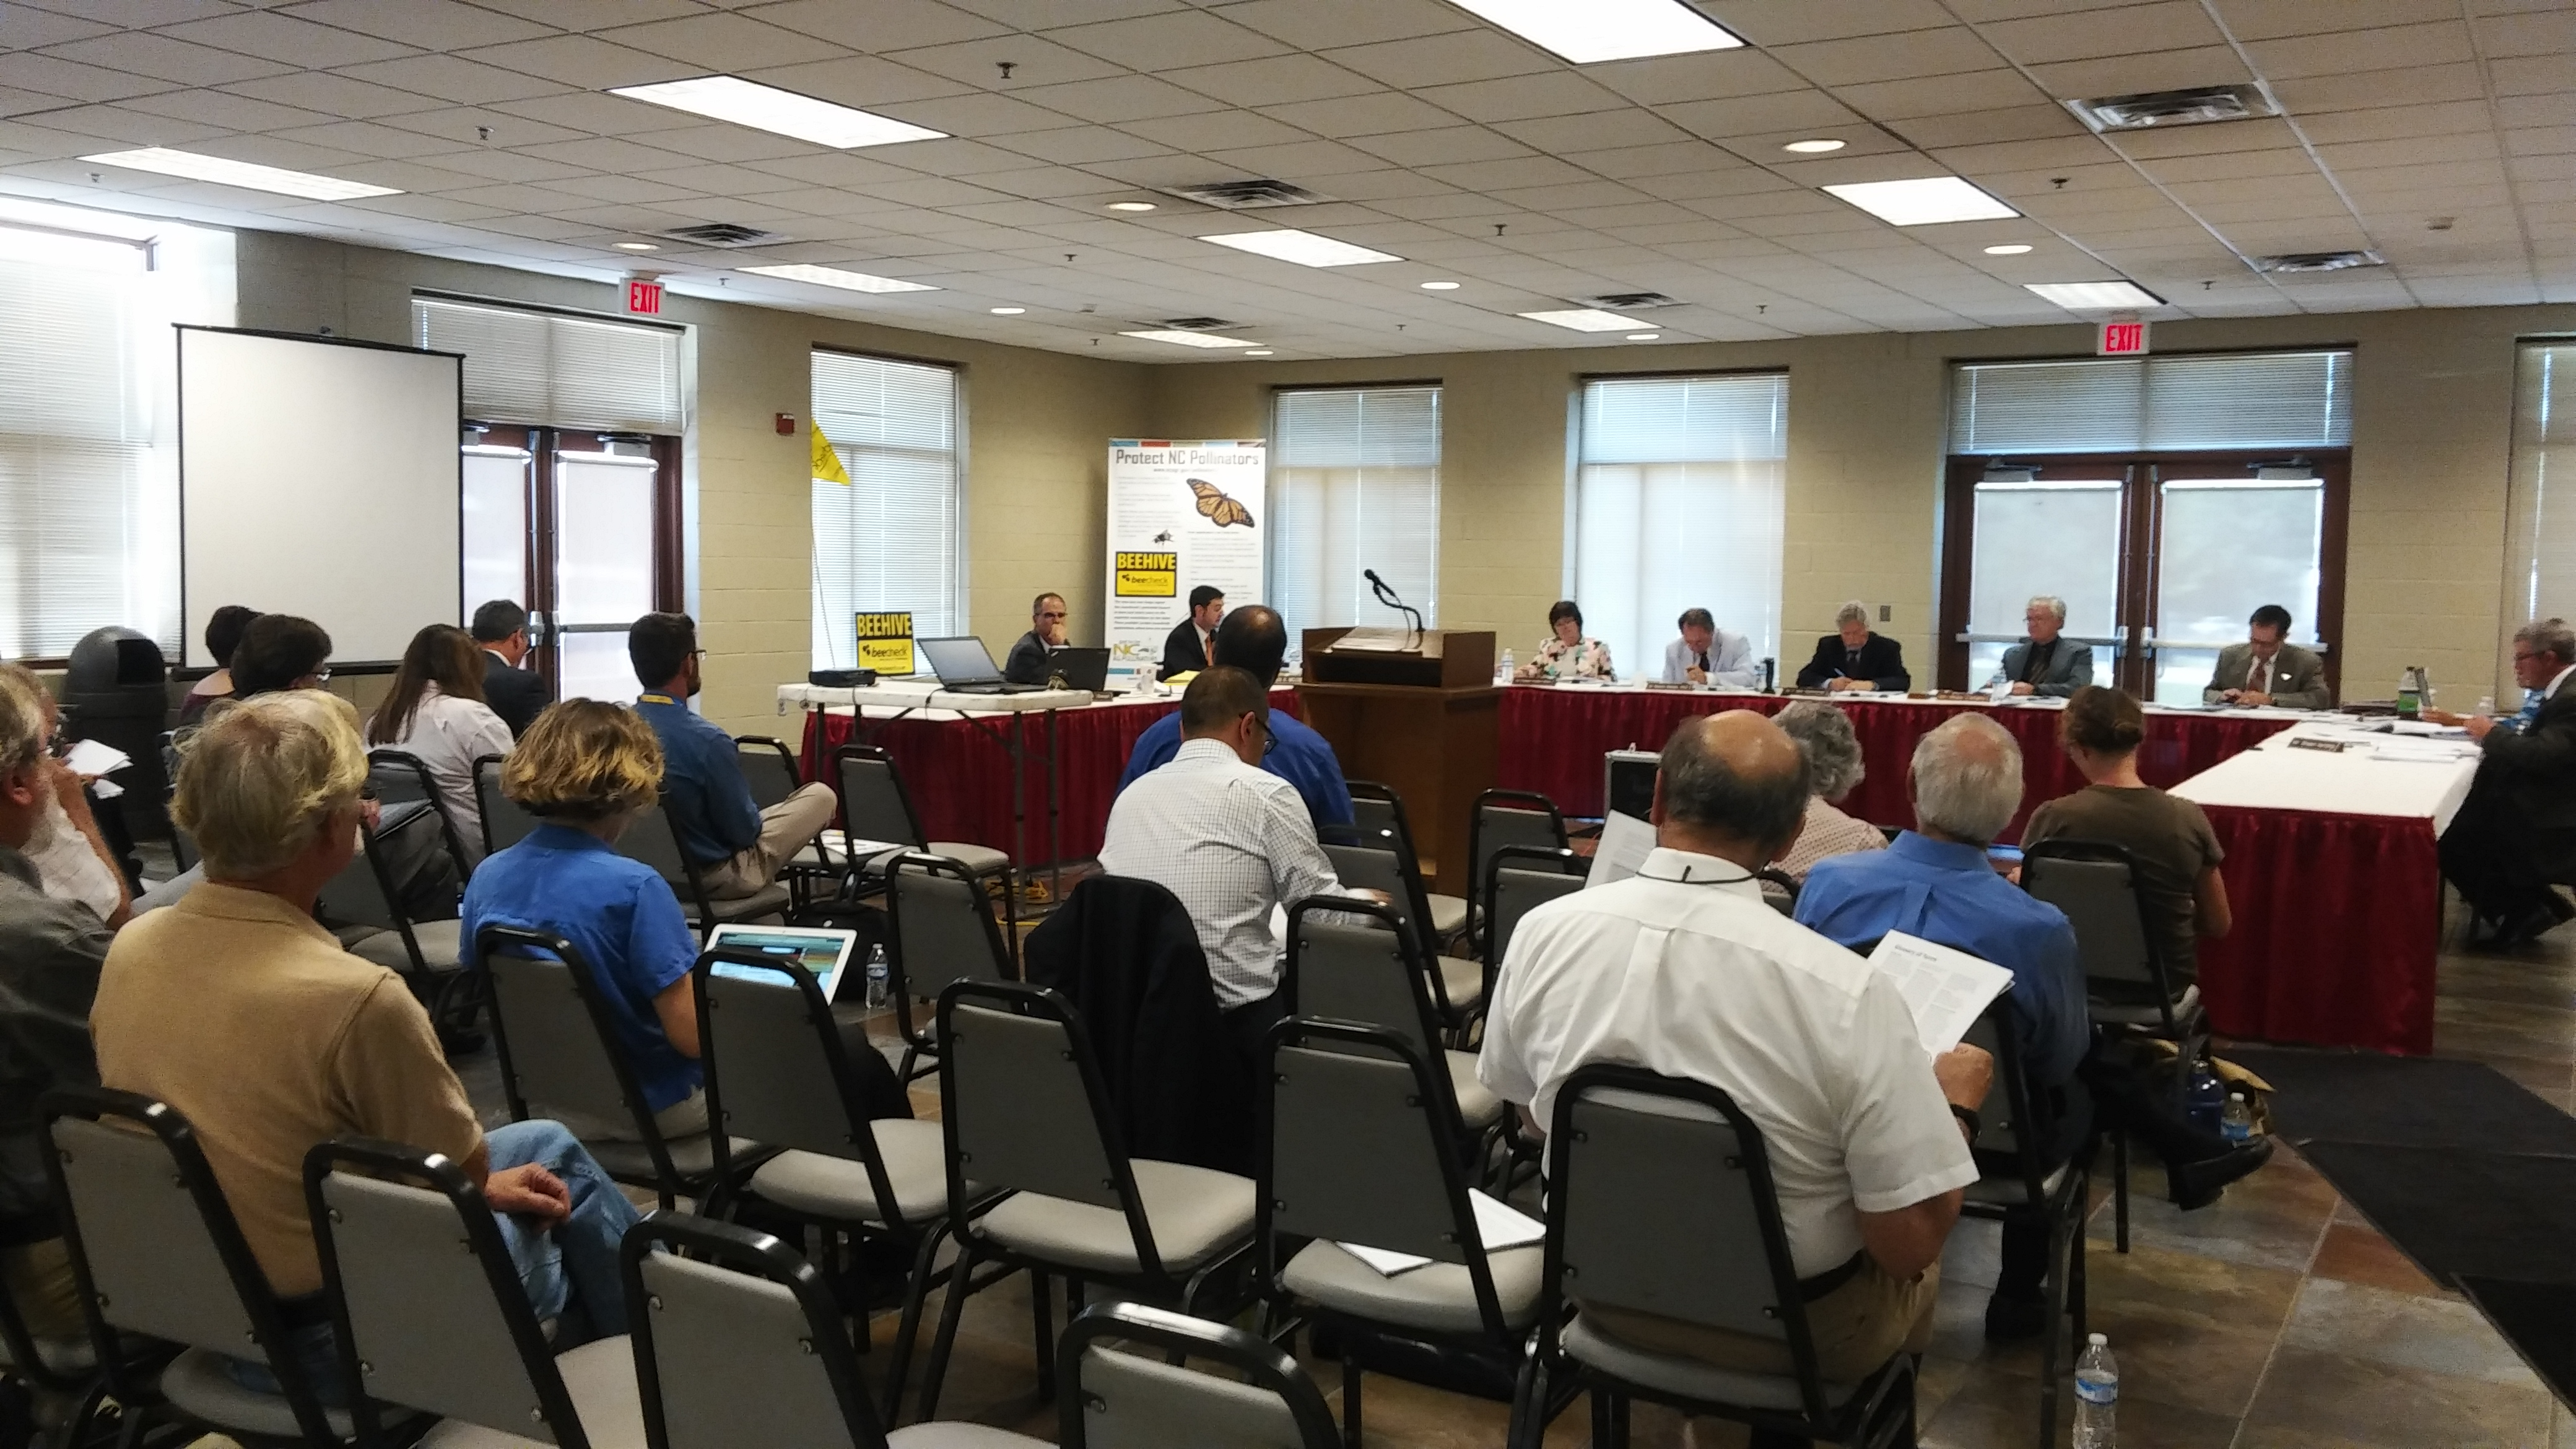 NC Pesticide Board Meeting – September 13, 2016 – Falling short of the mark